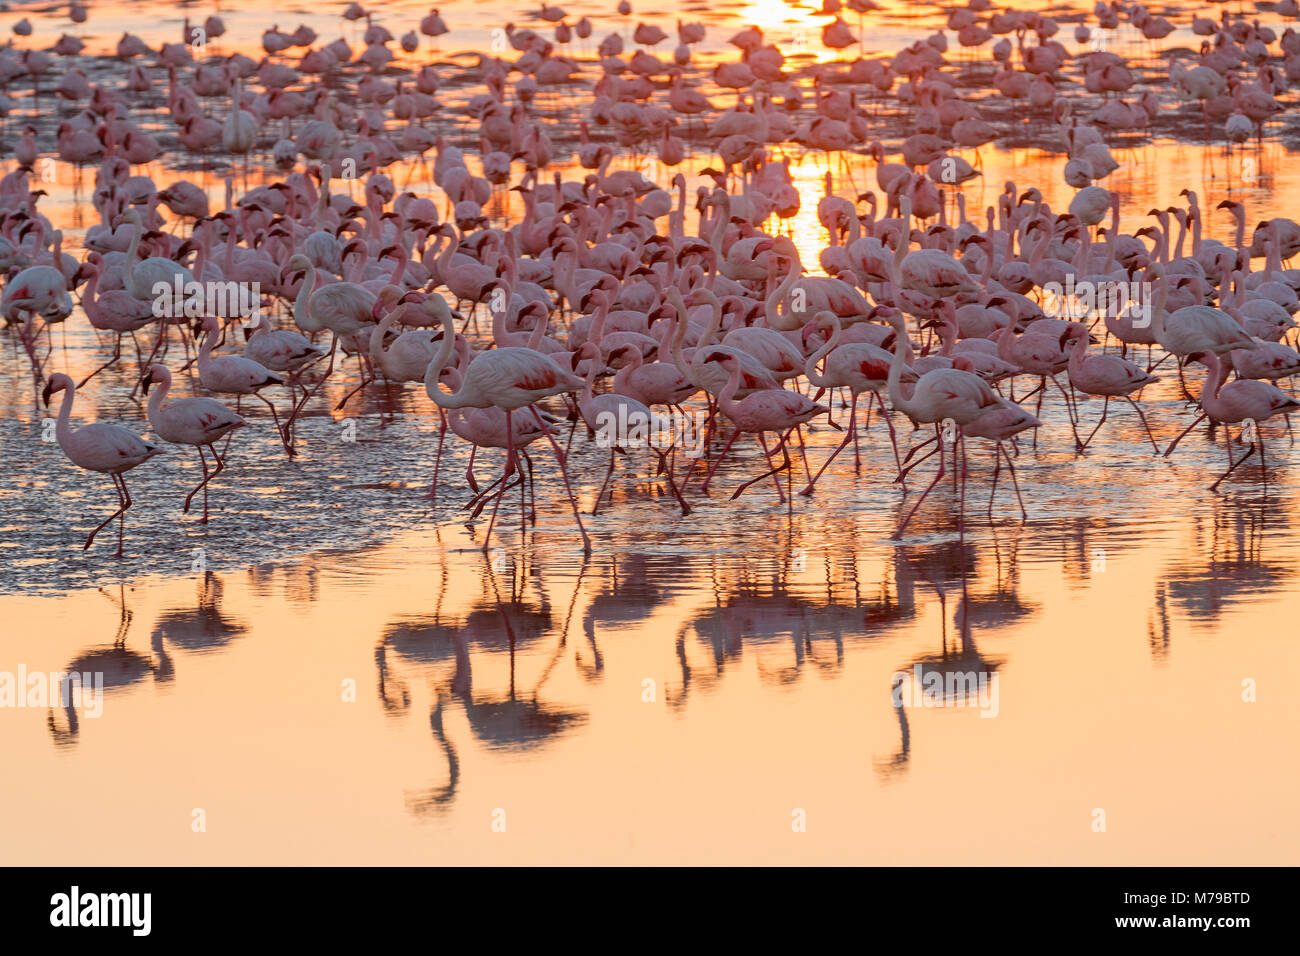 A huge colony of pink flamingos is feeding during sunset at Walvis Bay on the Namibian coast in southern Africa - Stock Image